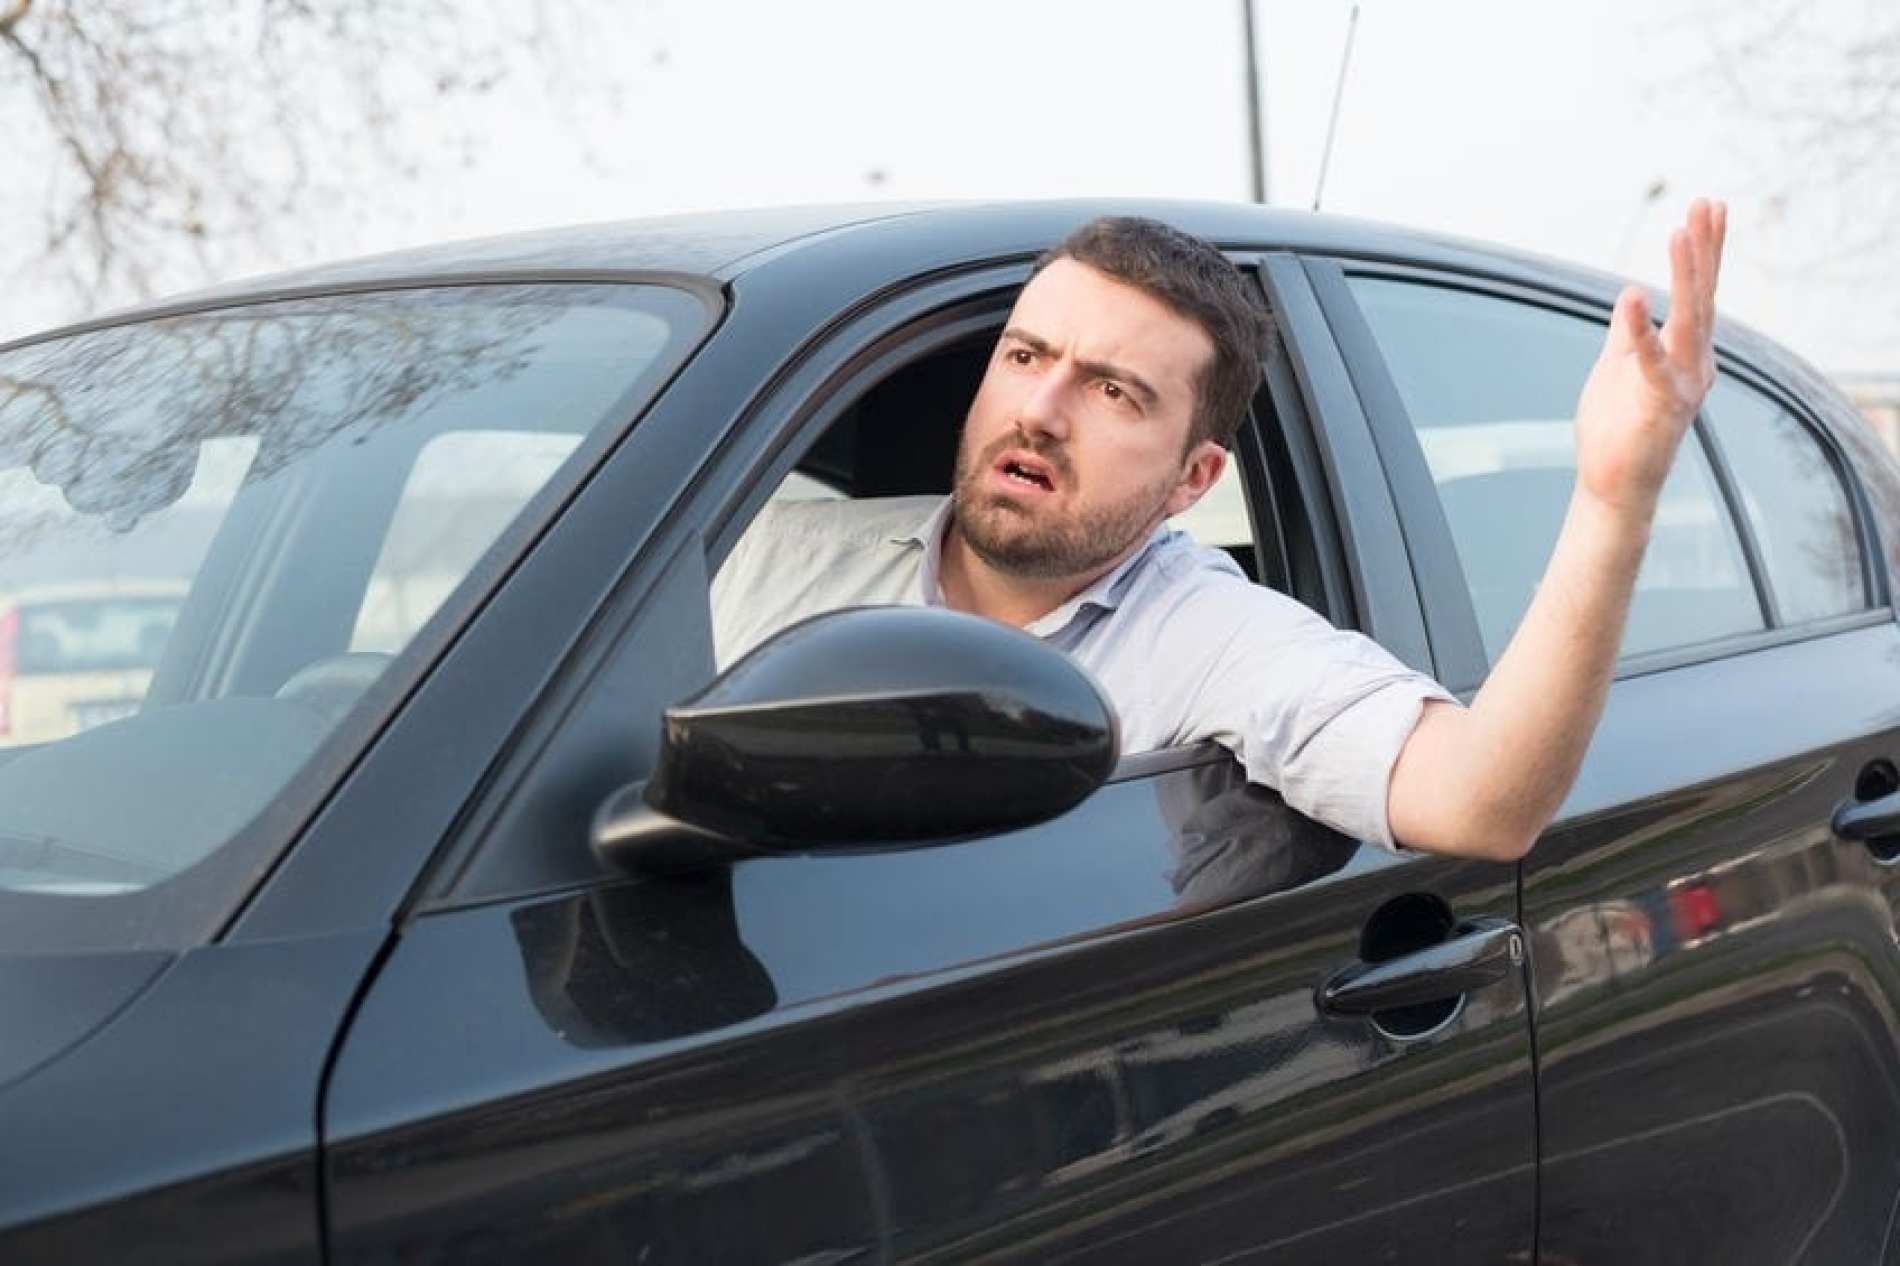 Texas Road Rage Injuries Can Be Serious – How to Protect Yourself